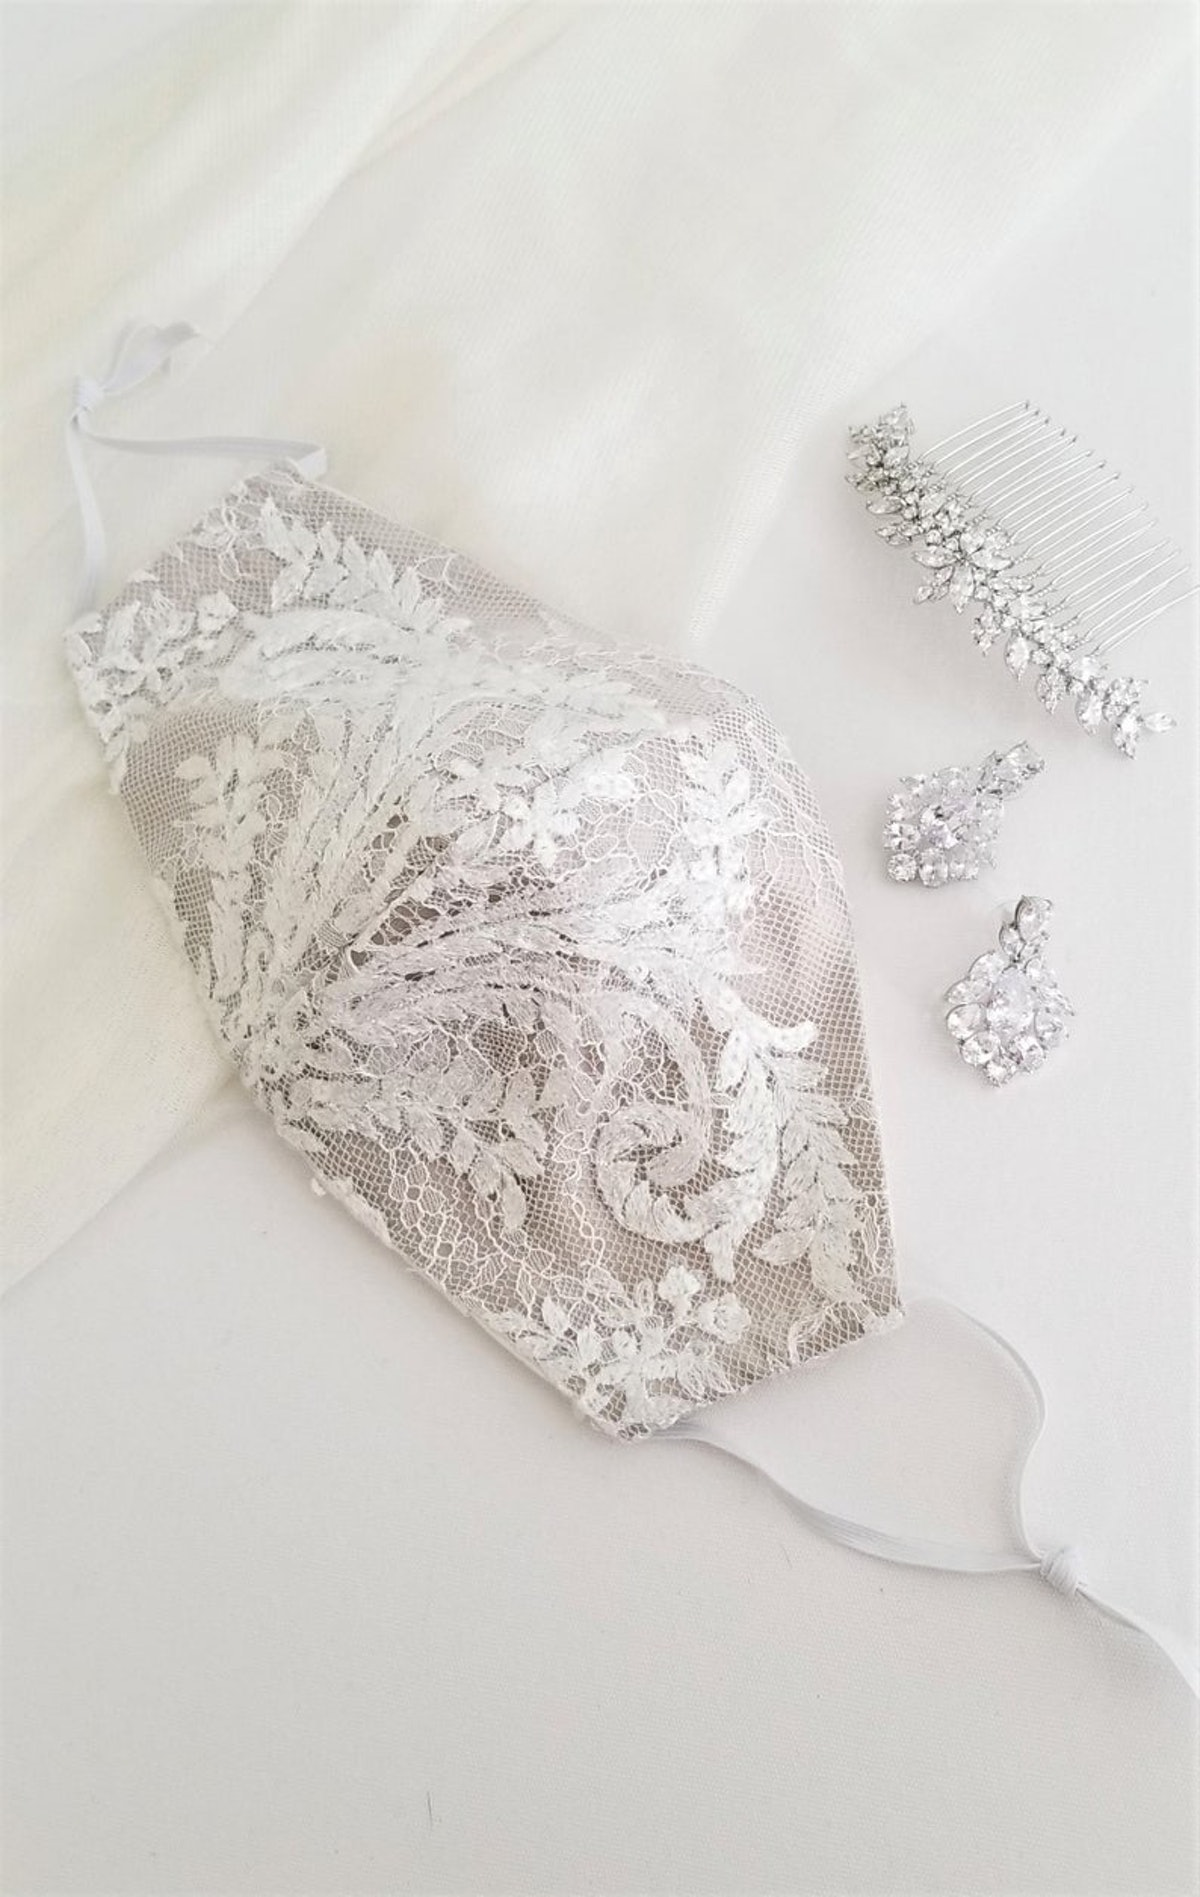 Face Mask For Bride, Silk and Lace Face Mask, Wedding Face Mask For Bride